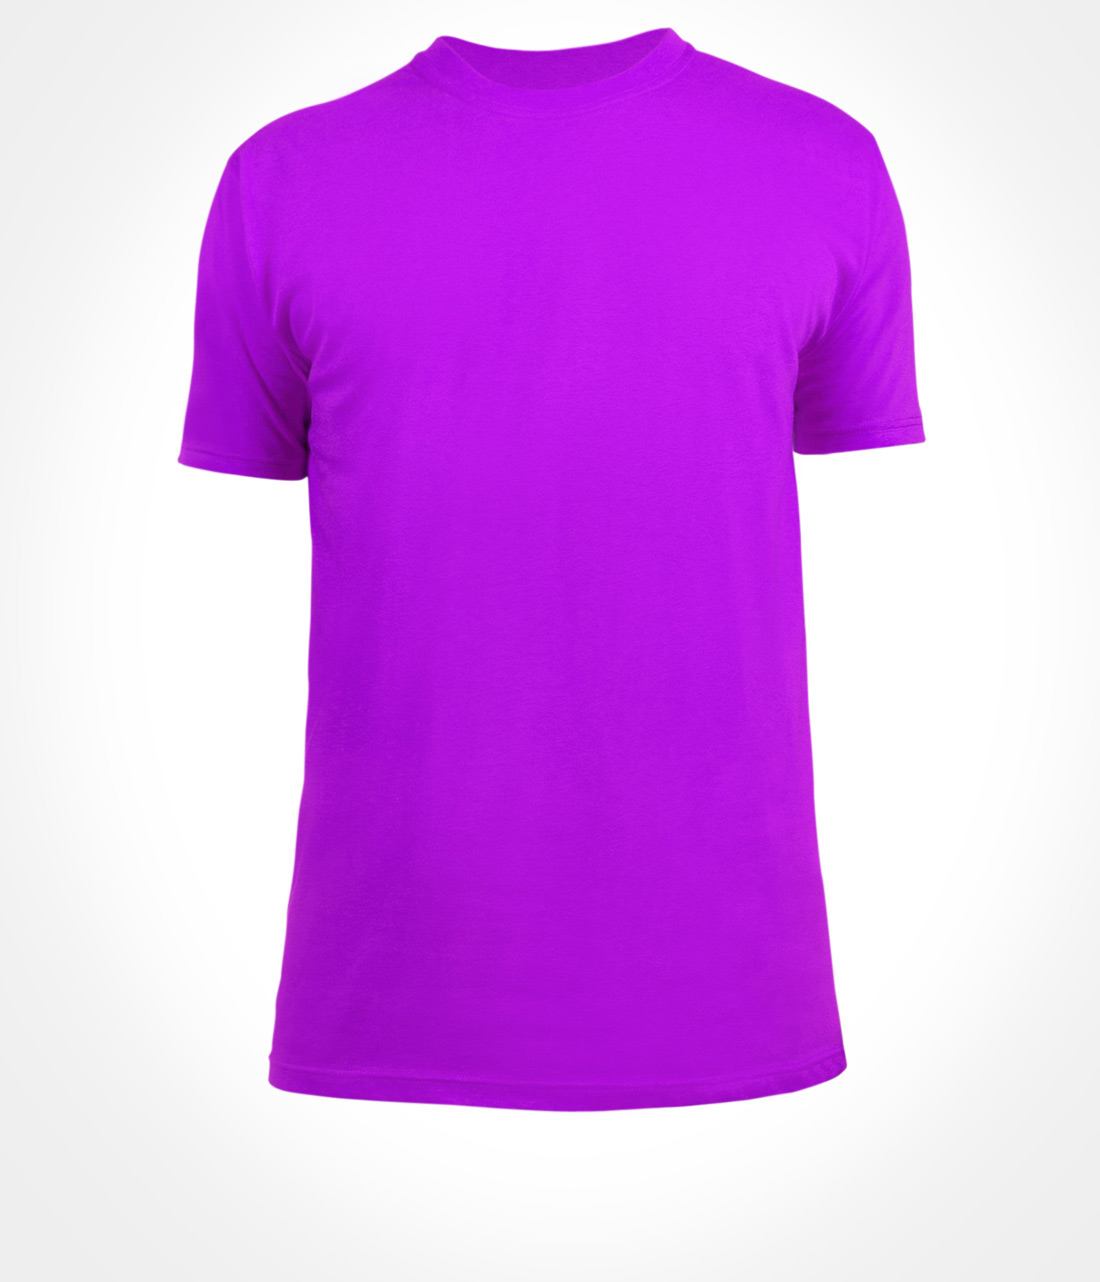 Product invisible Ghost Mannequin photo editing, wrinkles removal from shirt